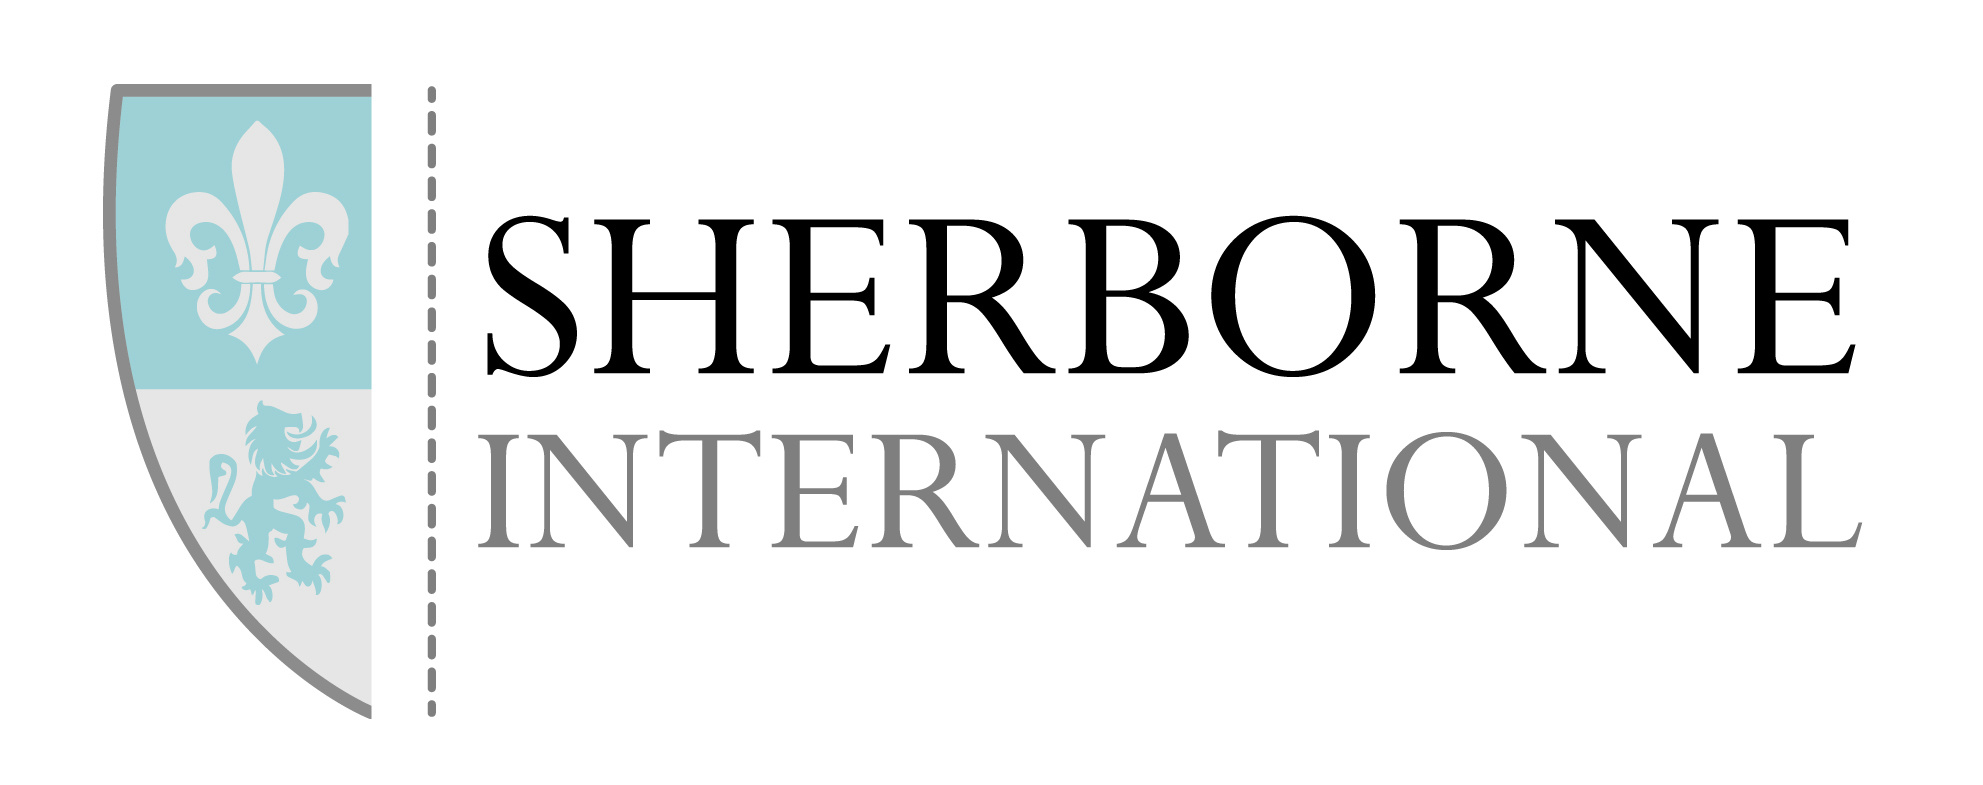 sherborne international new logo blue from Glenn